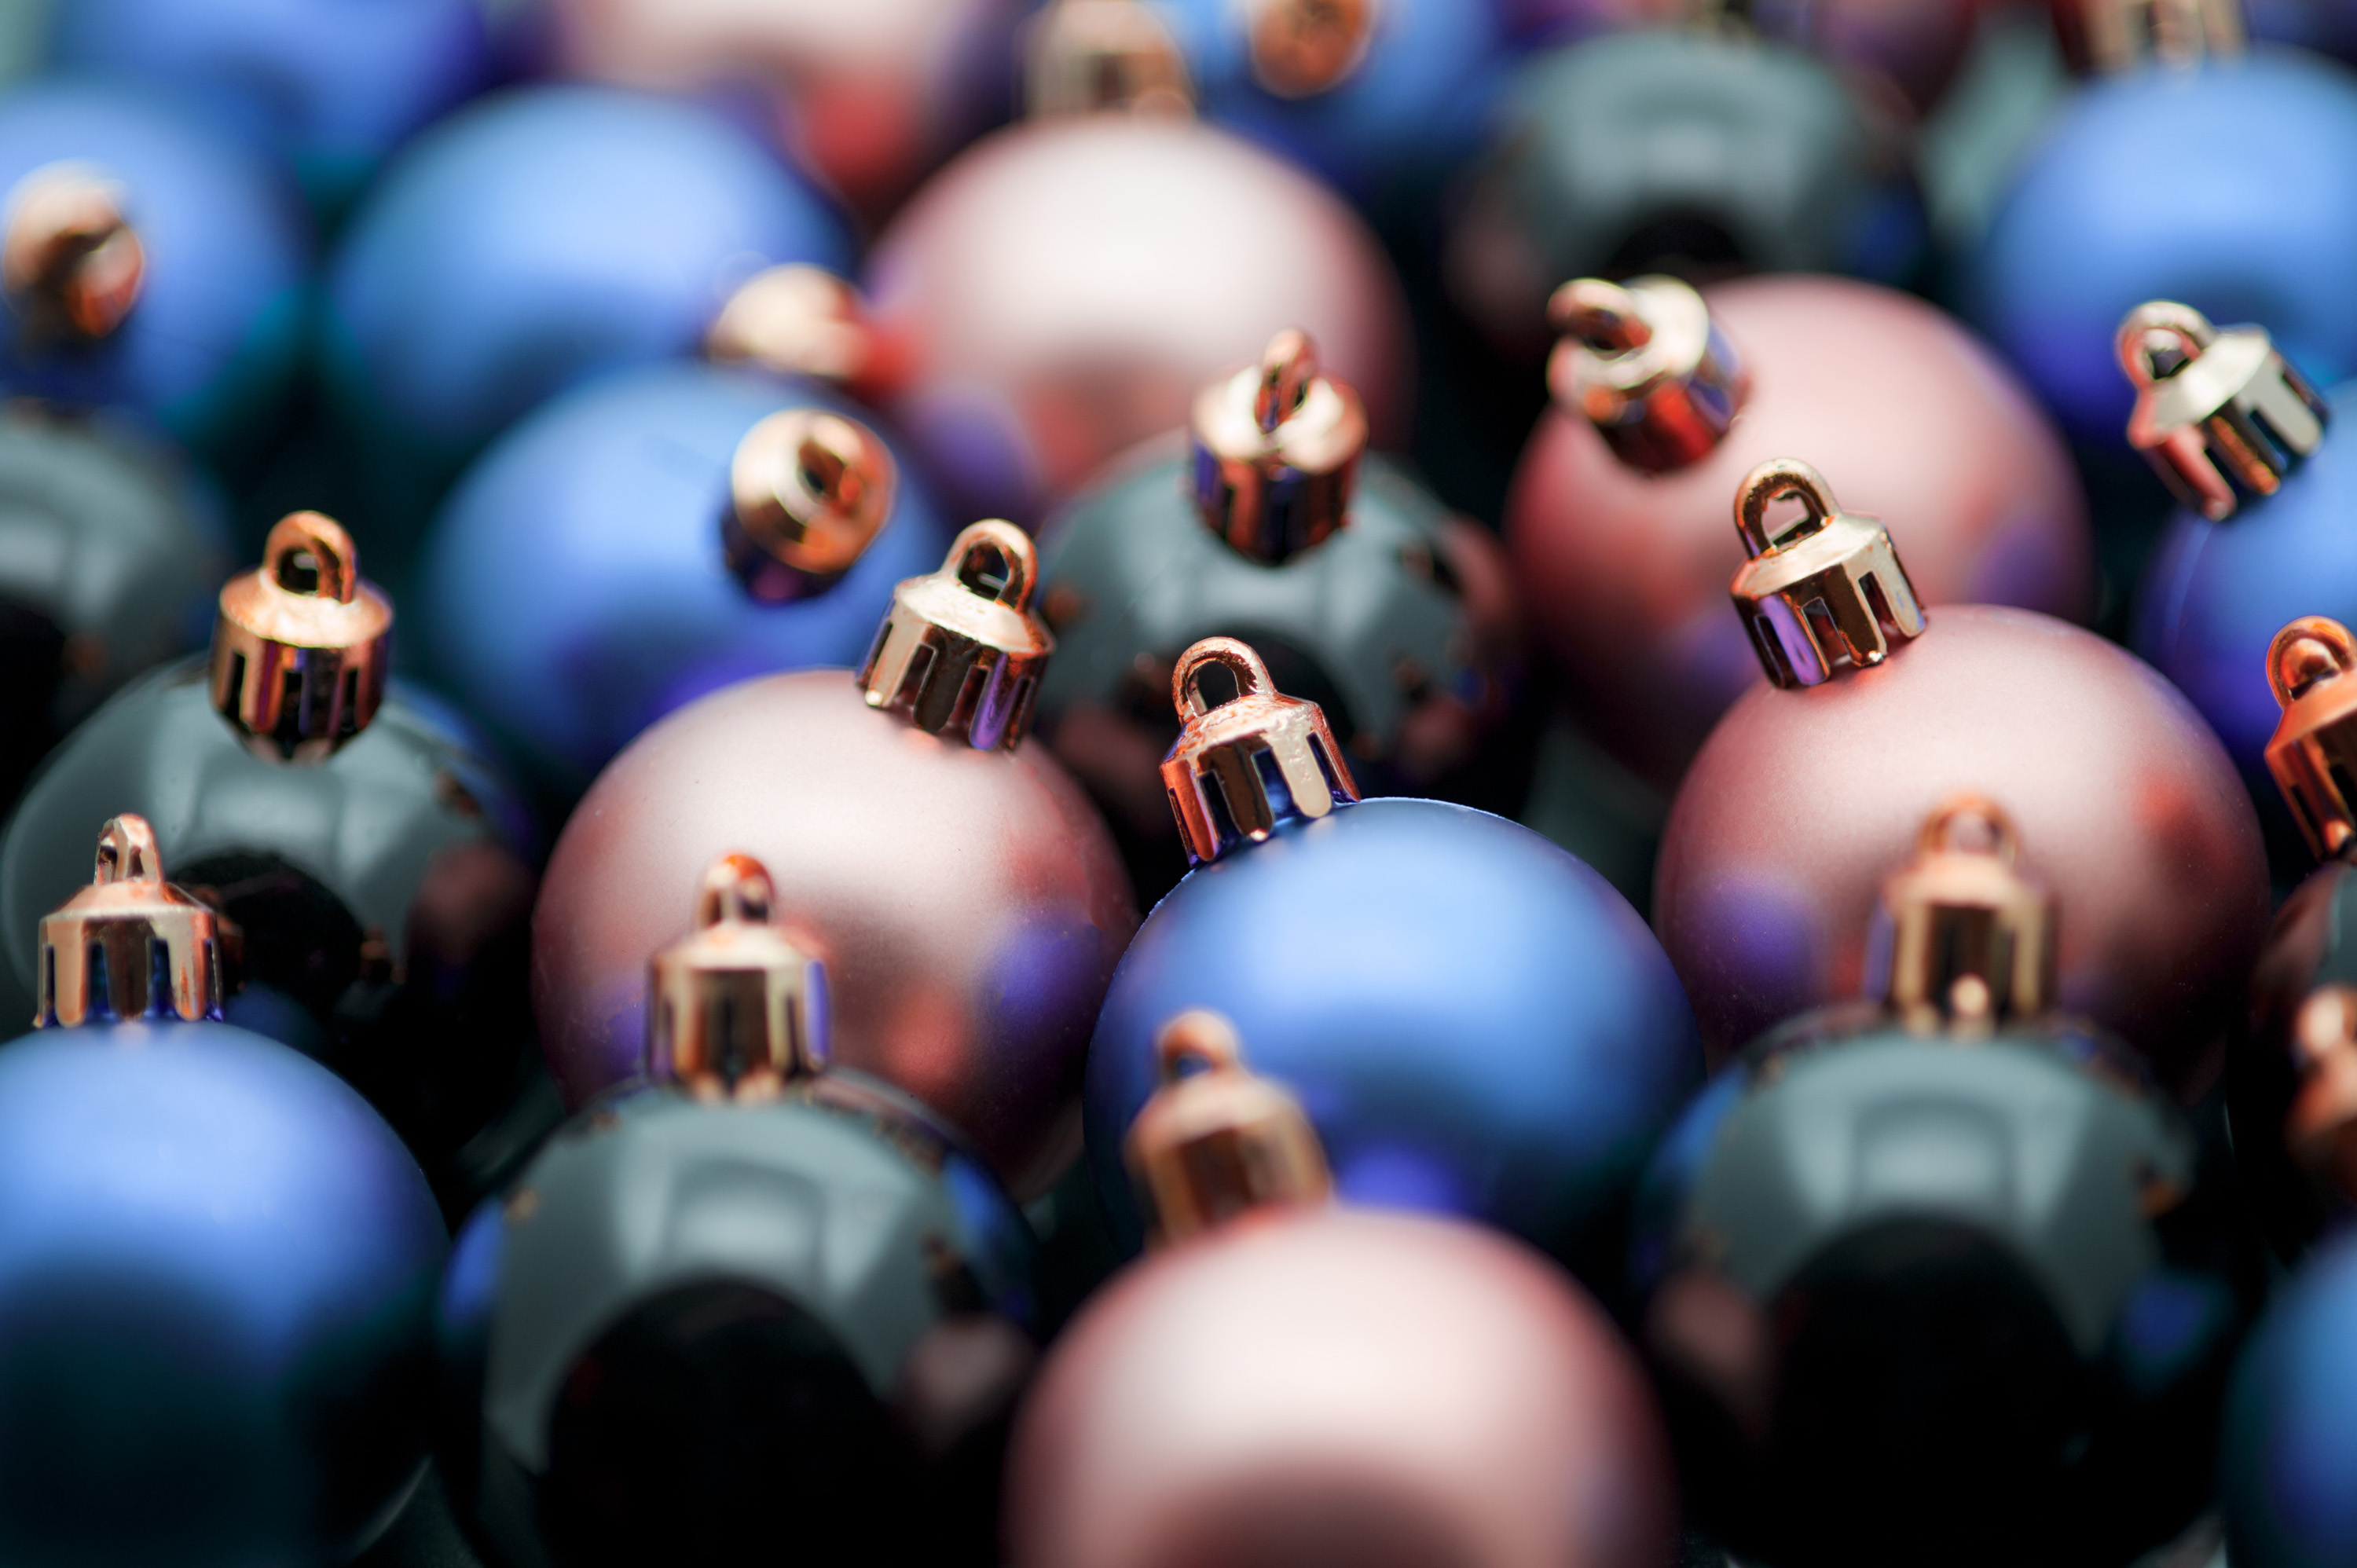 Xmas decorations background with very shallow dof on blue, red and black baubles or balls